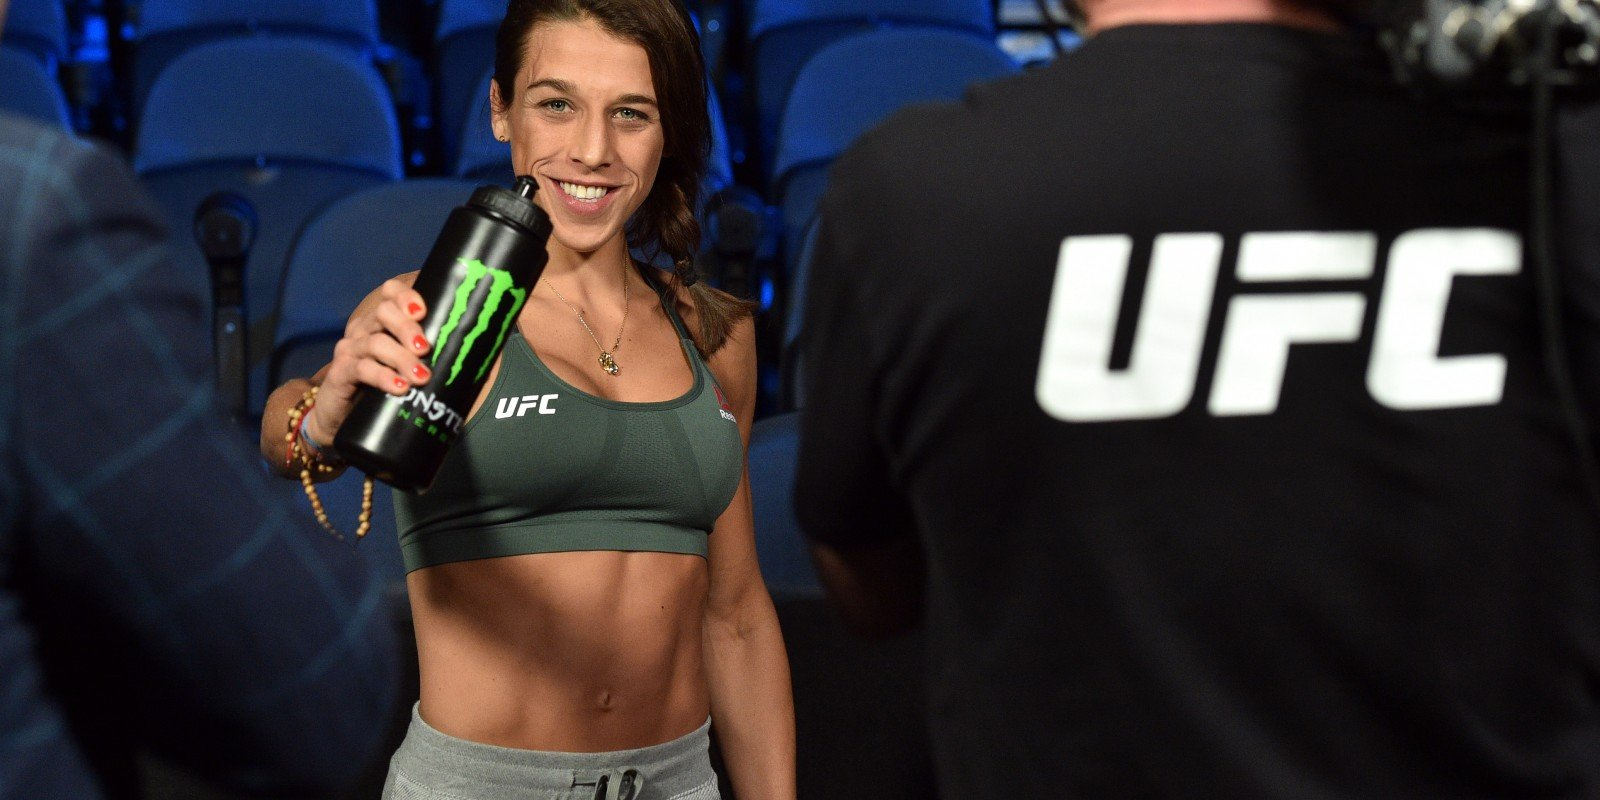 Images from the 2020 UFC 248 Fight in Las Vegas, Nevada